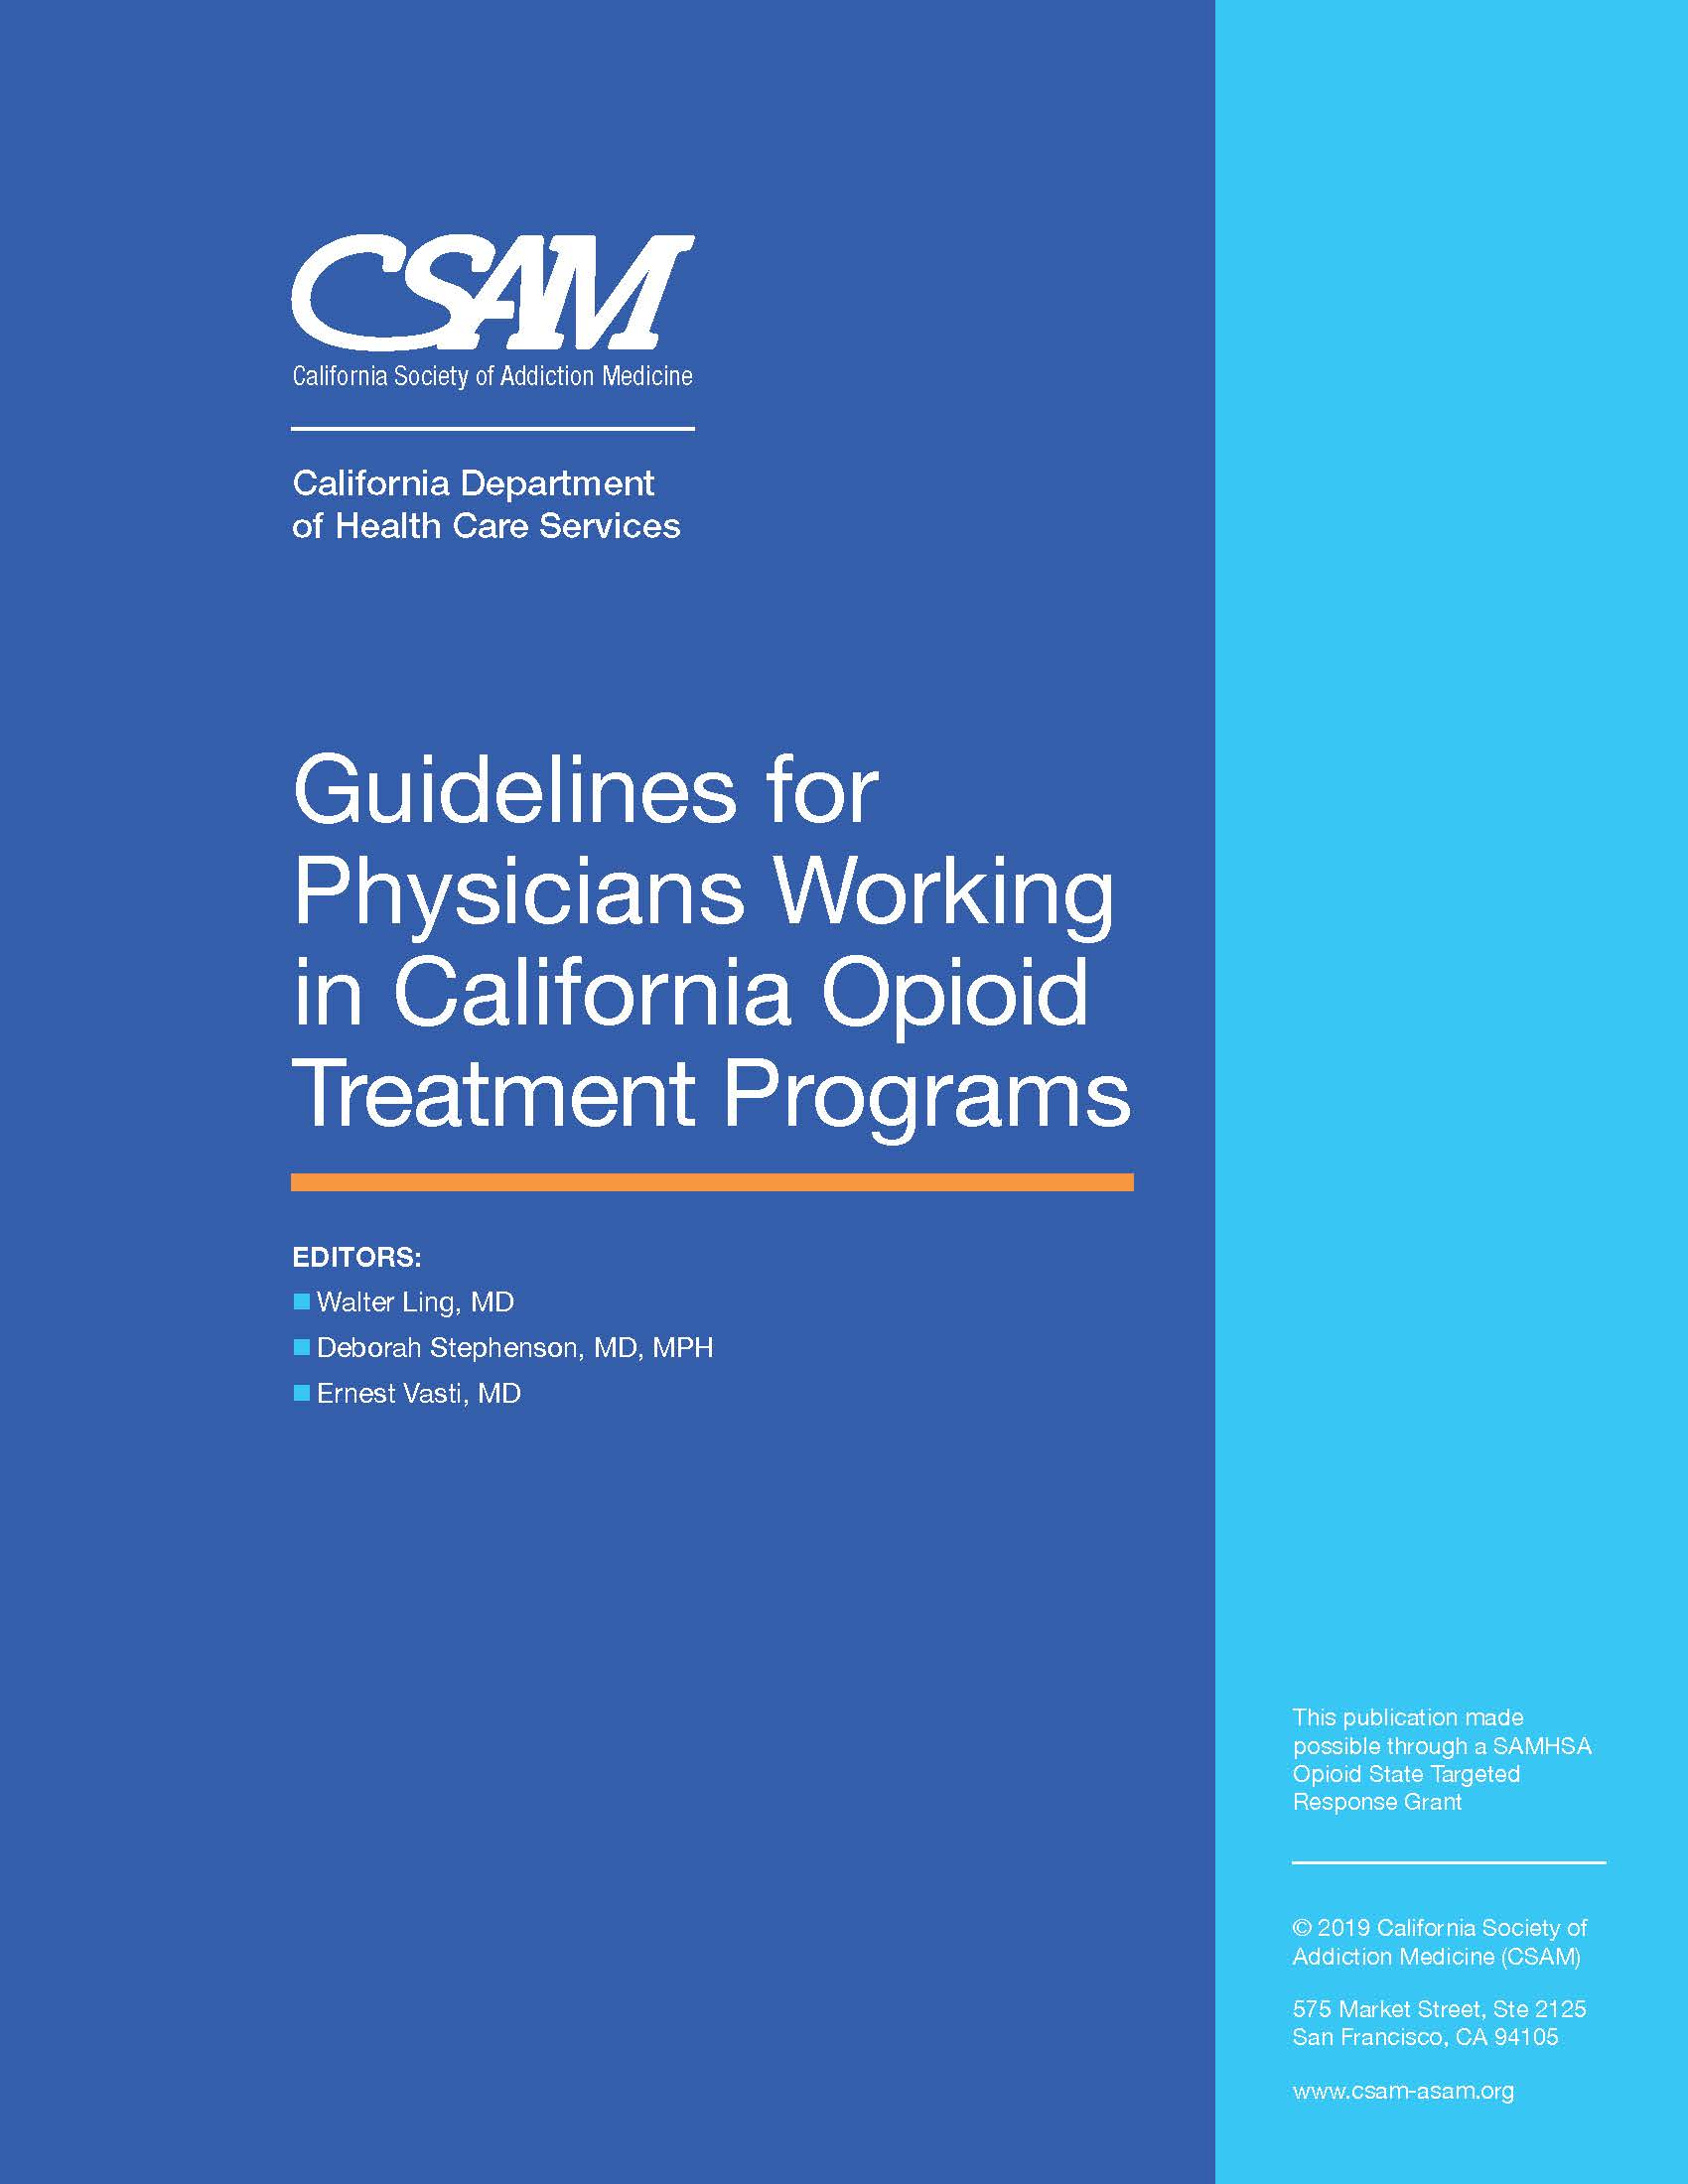 Guidelines for Physicians Working in California Opioid Treatment Programs